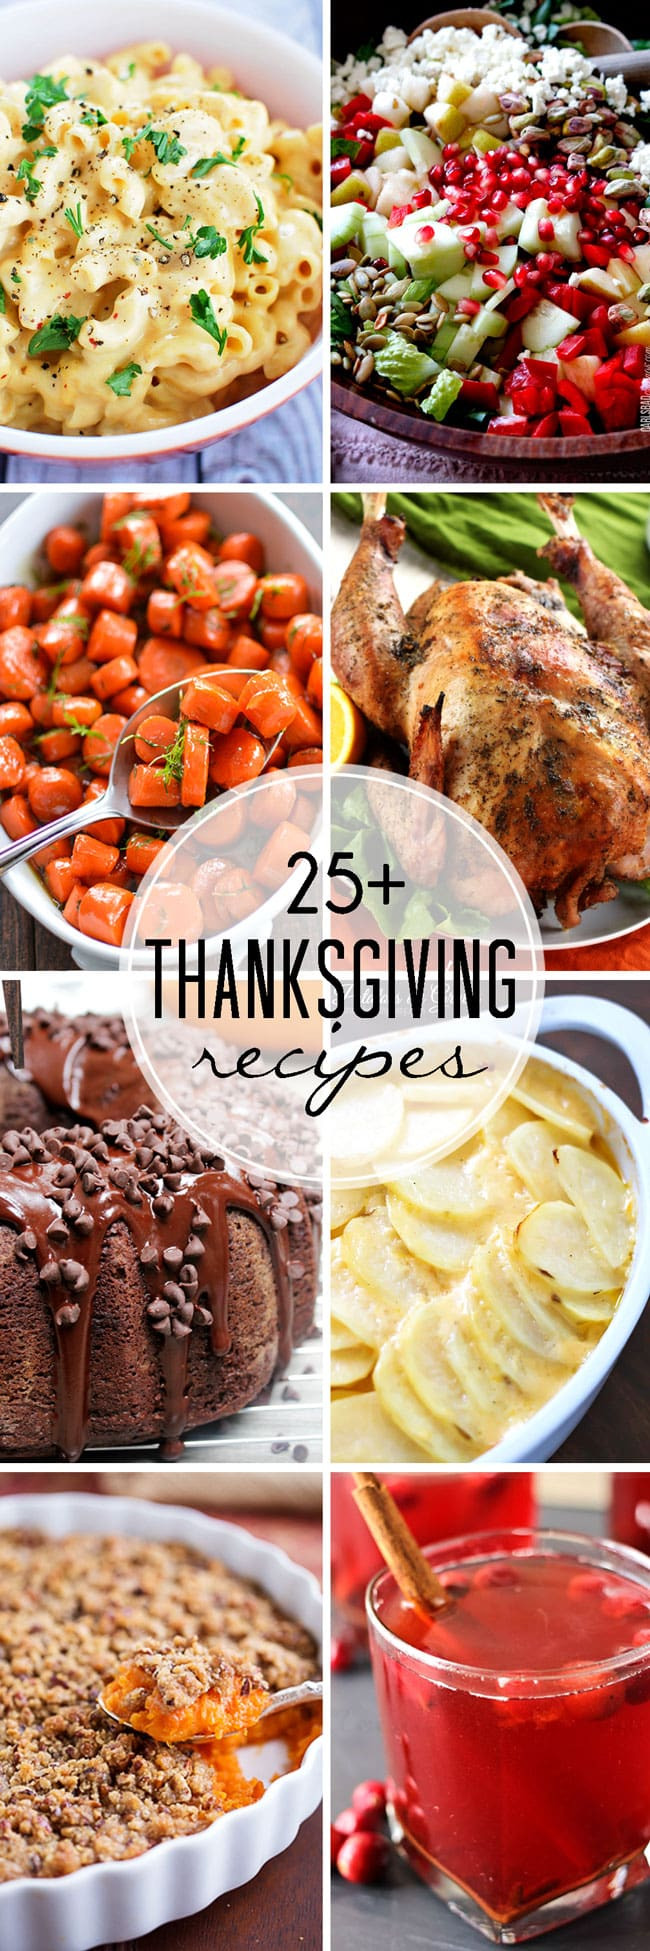 Turkey Recipes Thanksgiving  25 Plus Fabulous Thanksgiving Recipes